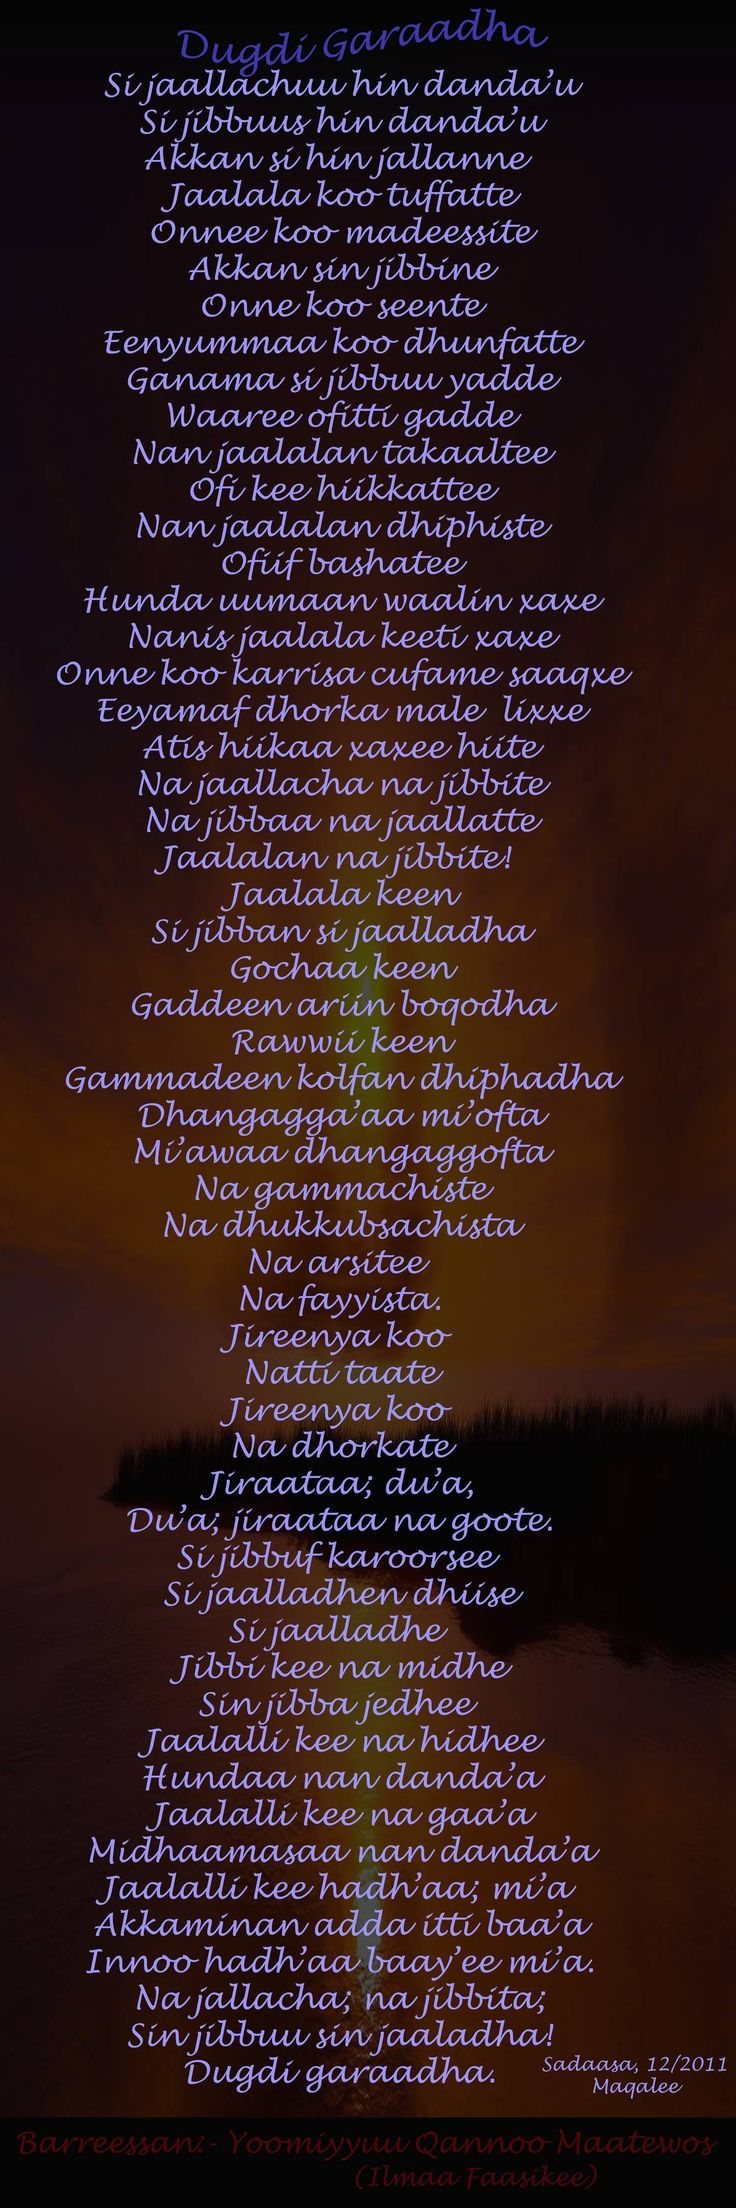 Poems in Oromo. Walaloo Afaan Oromo. Dugdi garaadha. The back is the front.